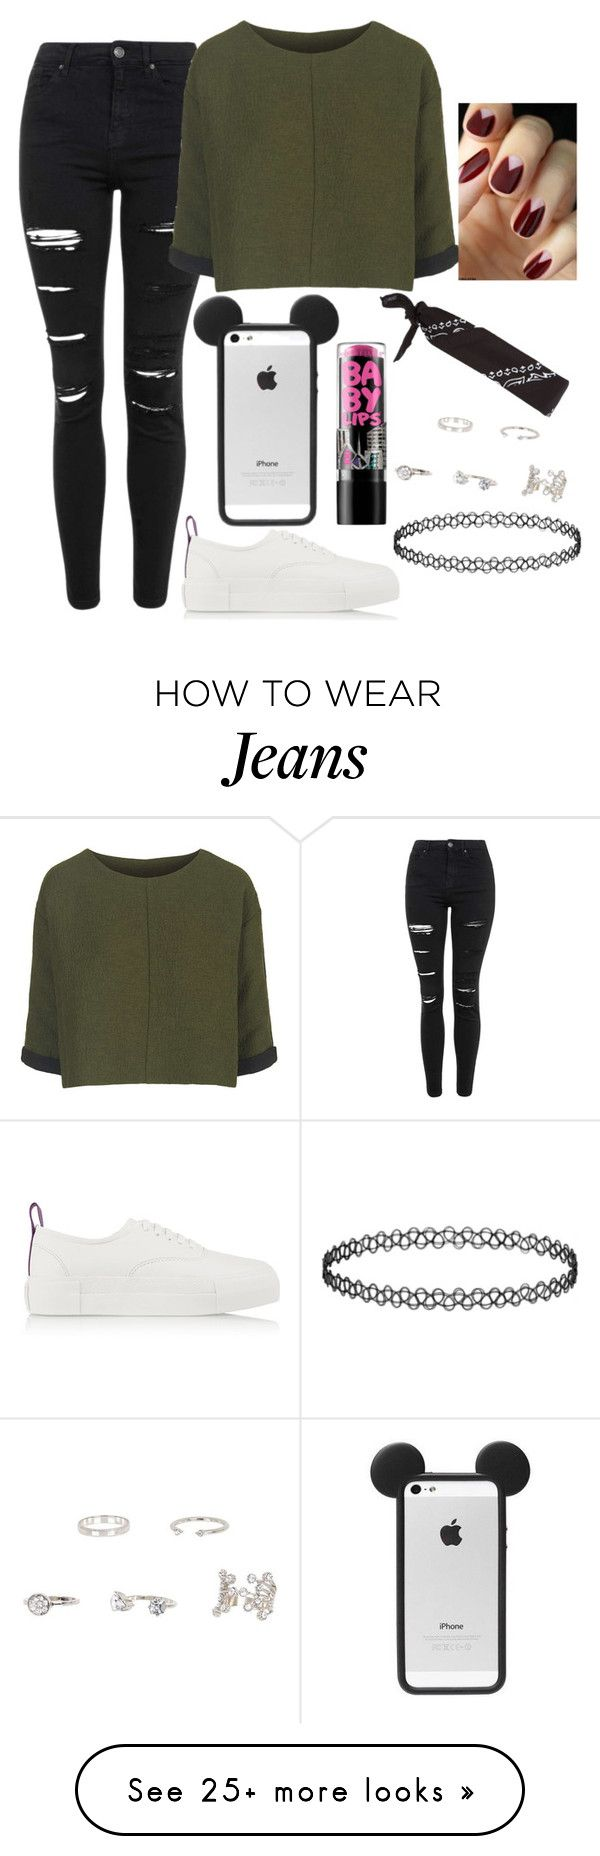 """""""Untitled#1334"""" by mihai-theodora on Polyvore featuring Topshop, Eytys, Maybelline and River Island"""